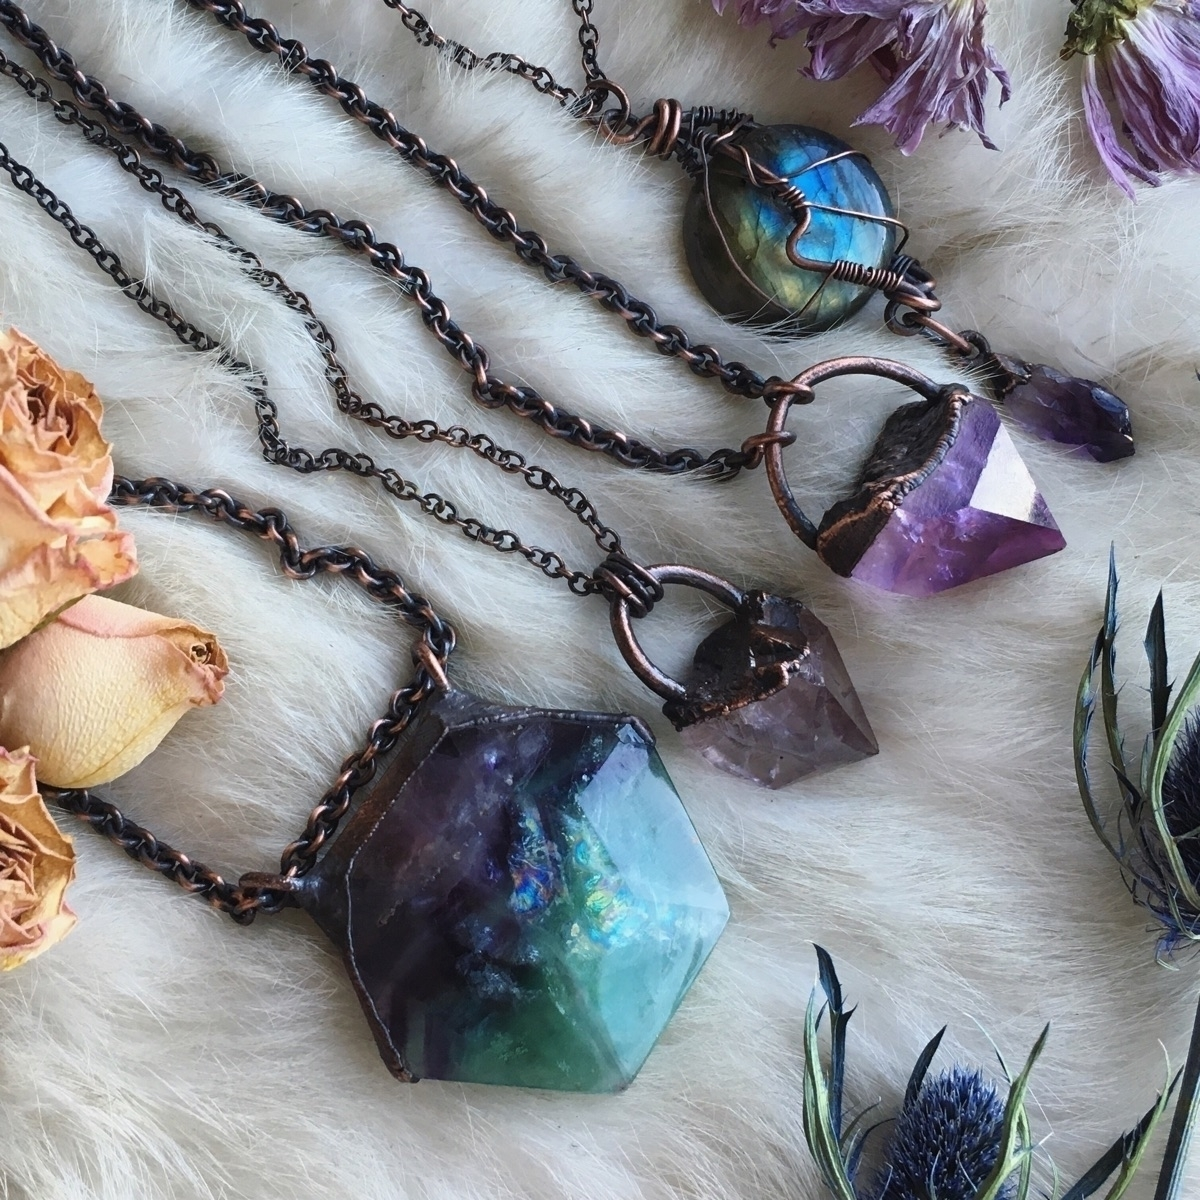 jewelry - gems, gemstone, rustic - thesacreddimension | ello